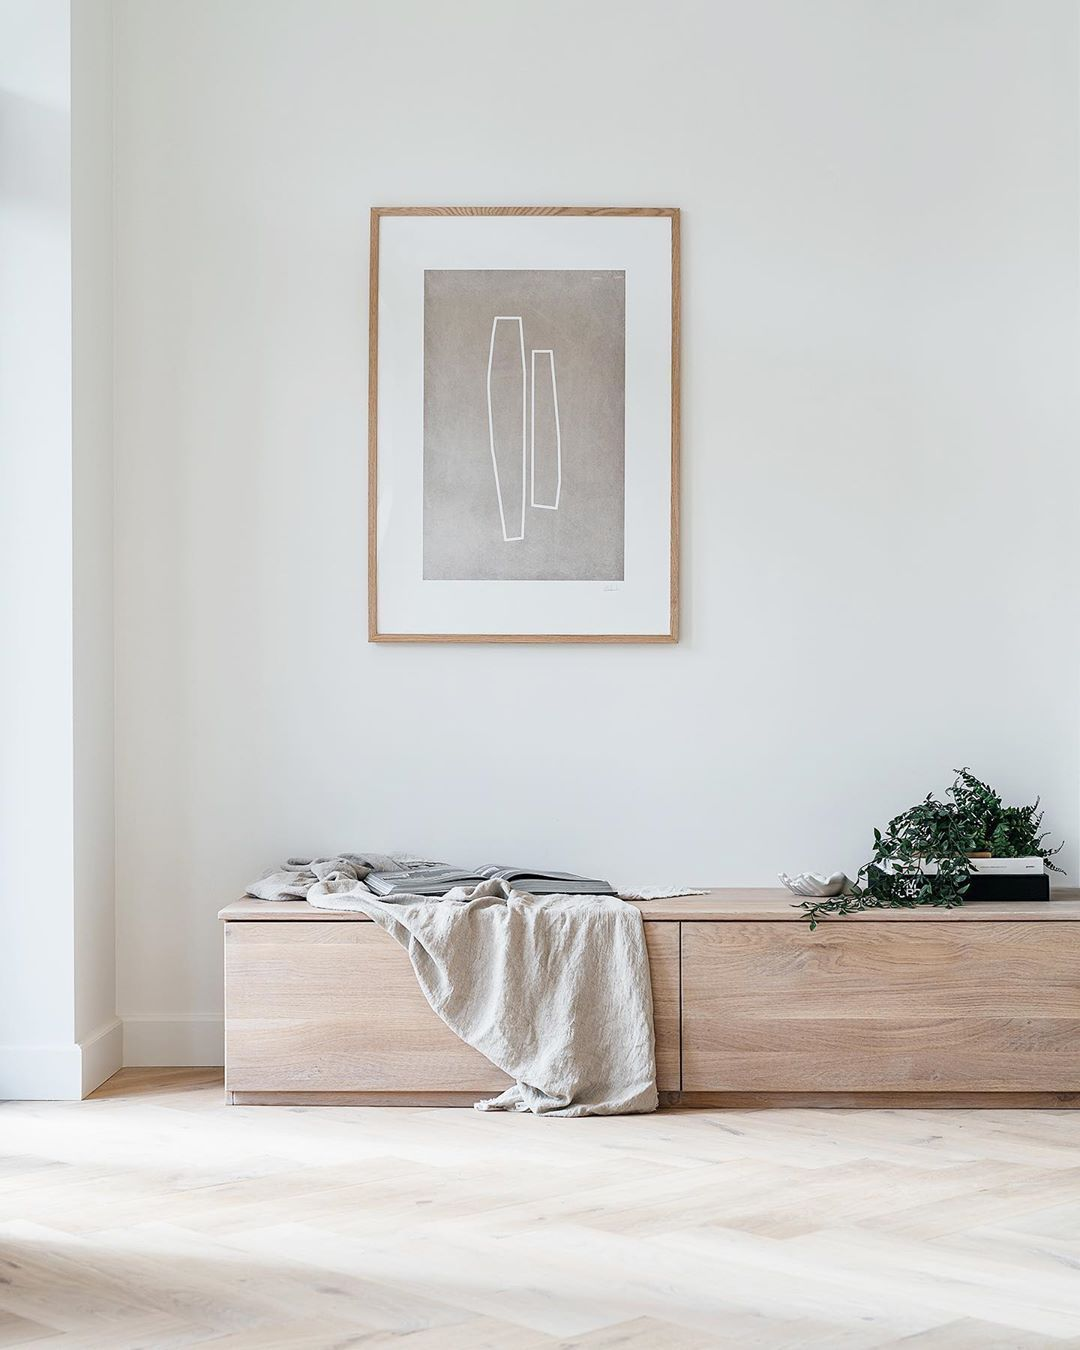 Simple, neutral and serene. By @hvmvastgoed featuring the FORM OF LEGS print by Alexandra Papadimouli.⁠Shop quality frames and a curated selection of posters and prints by artists, designers and photographers — Worldwide shipping #beige #apartmenttherapy #dreamybedroom #bedroominspo #linedrawing #art #poster #lineart #beigetoned #theposterclub ⁠#art #artprint #artposter #tpc #theposterclub #interiordesign #nordicdecor #simpleinteriors #neutralspace #serenedecor #homestyling